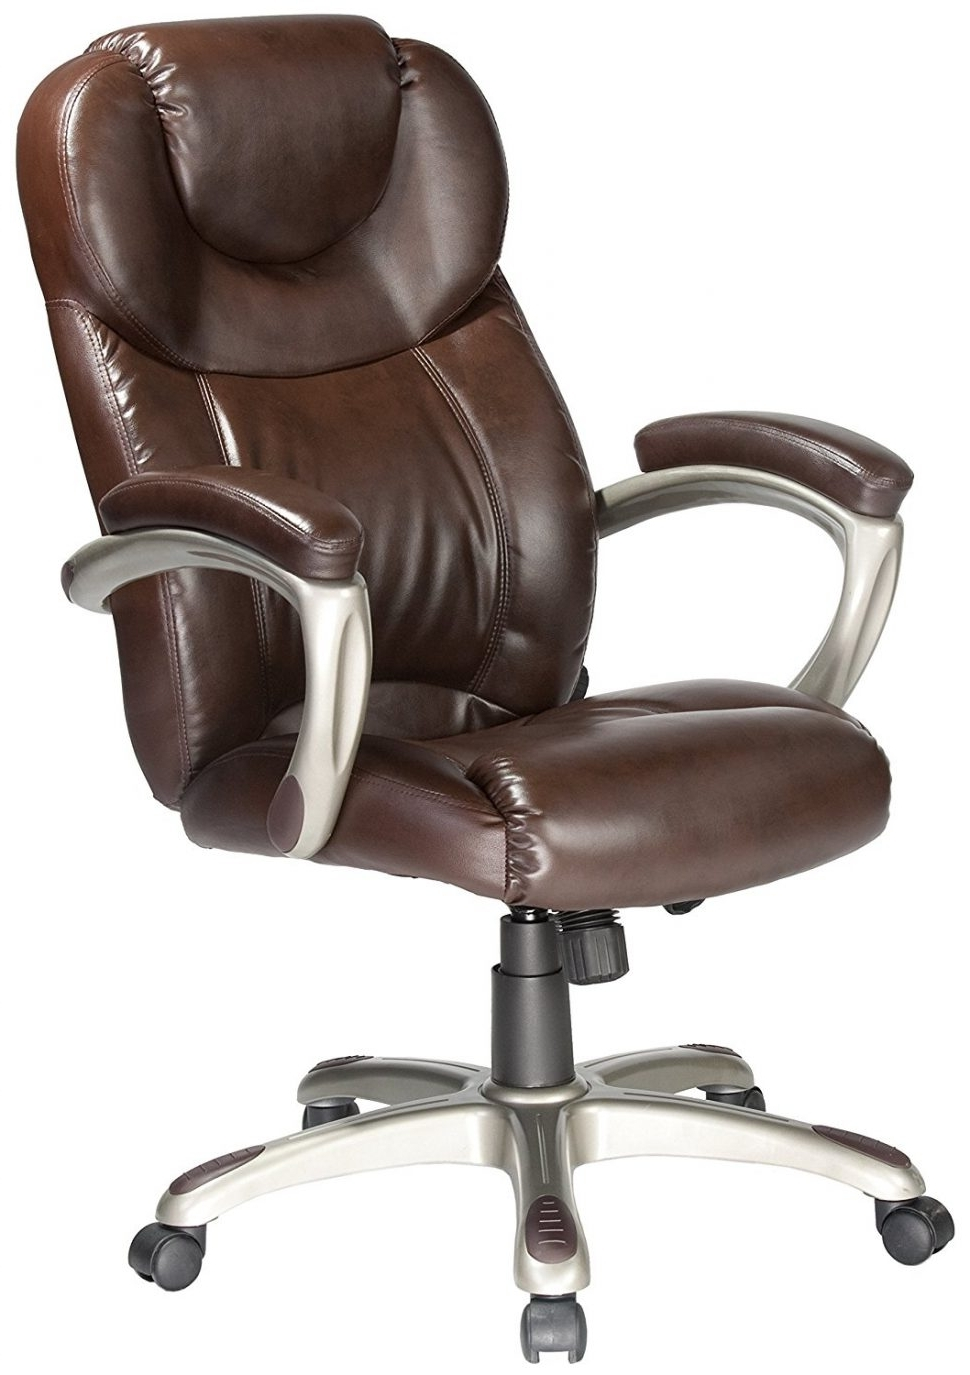 2019 Tan Brown Mid Back Executive Office Chairs Throughout Chair : Brown Leather Office Chair Oversized Chair And A Half (View 1 of 20)